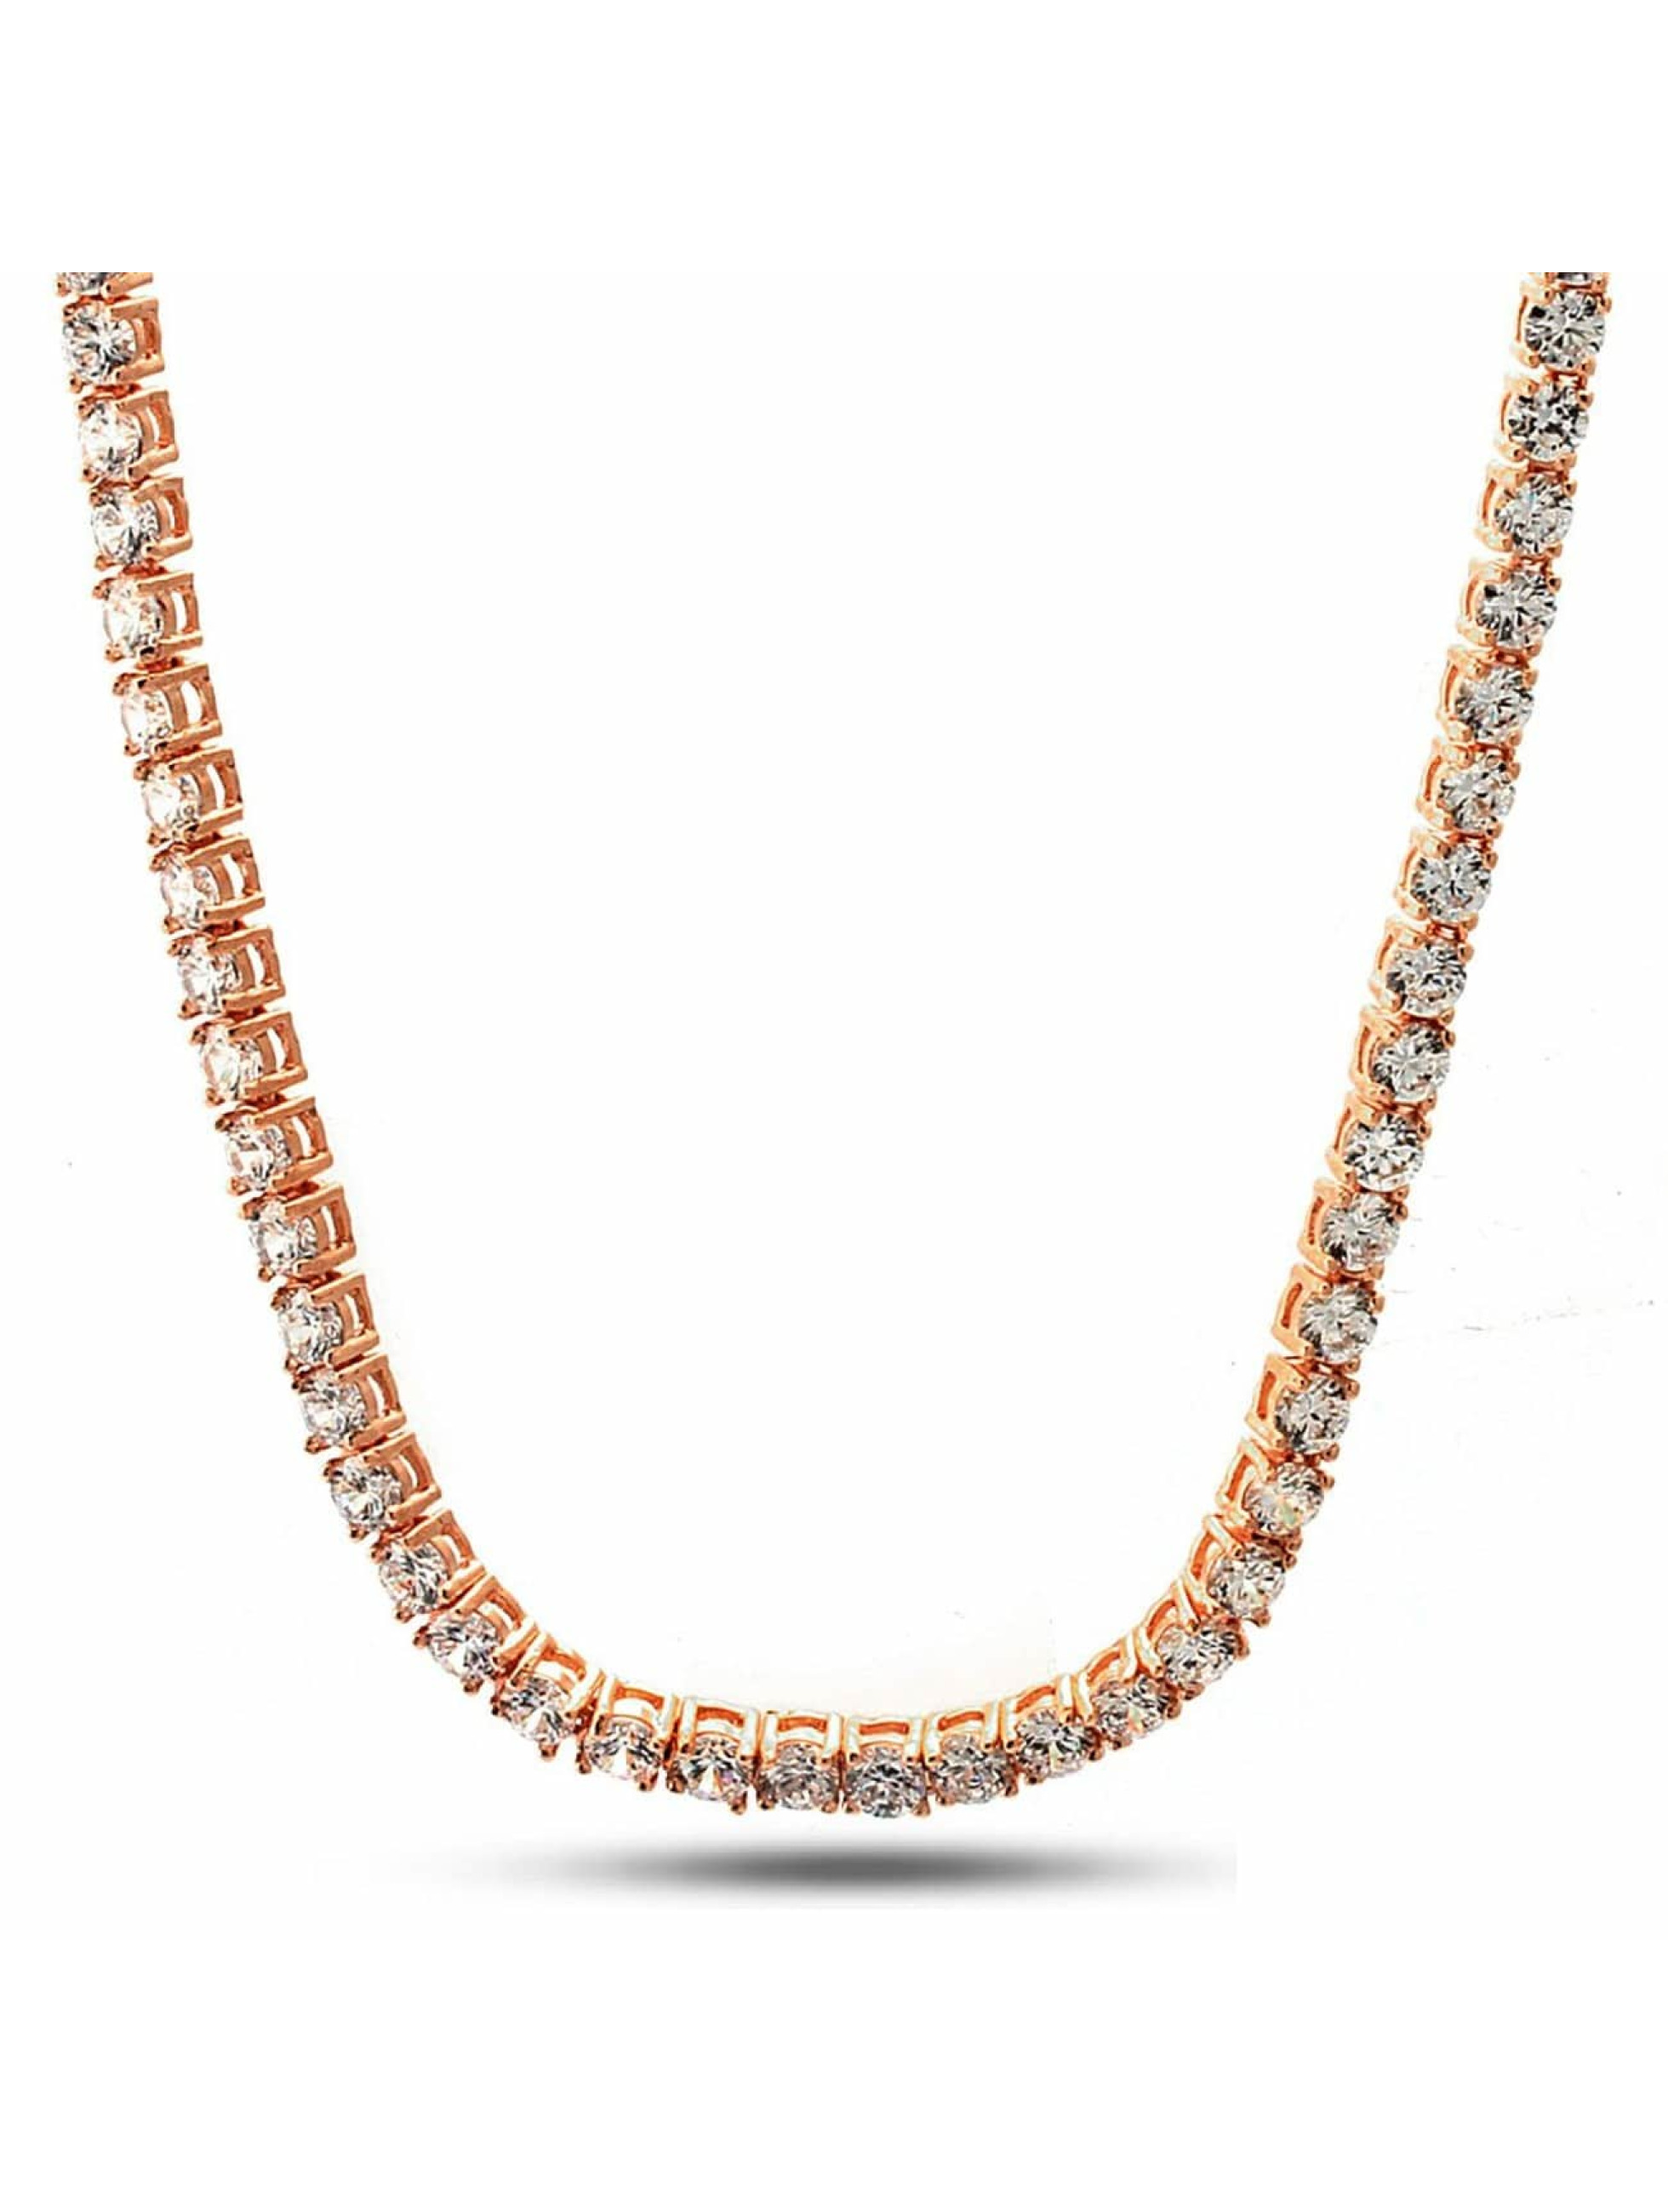 KING ICE Necklace Gold_Plated 5mm Single Row CZ Pharaoh gold